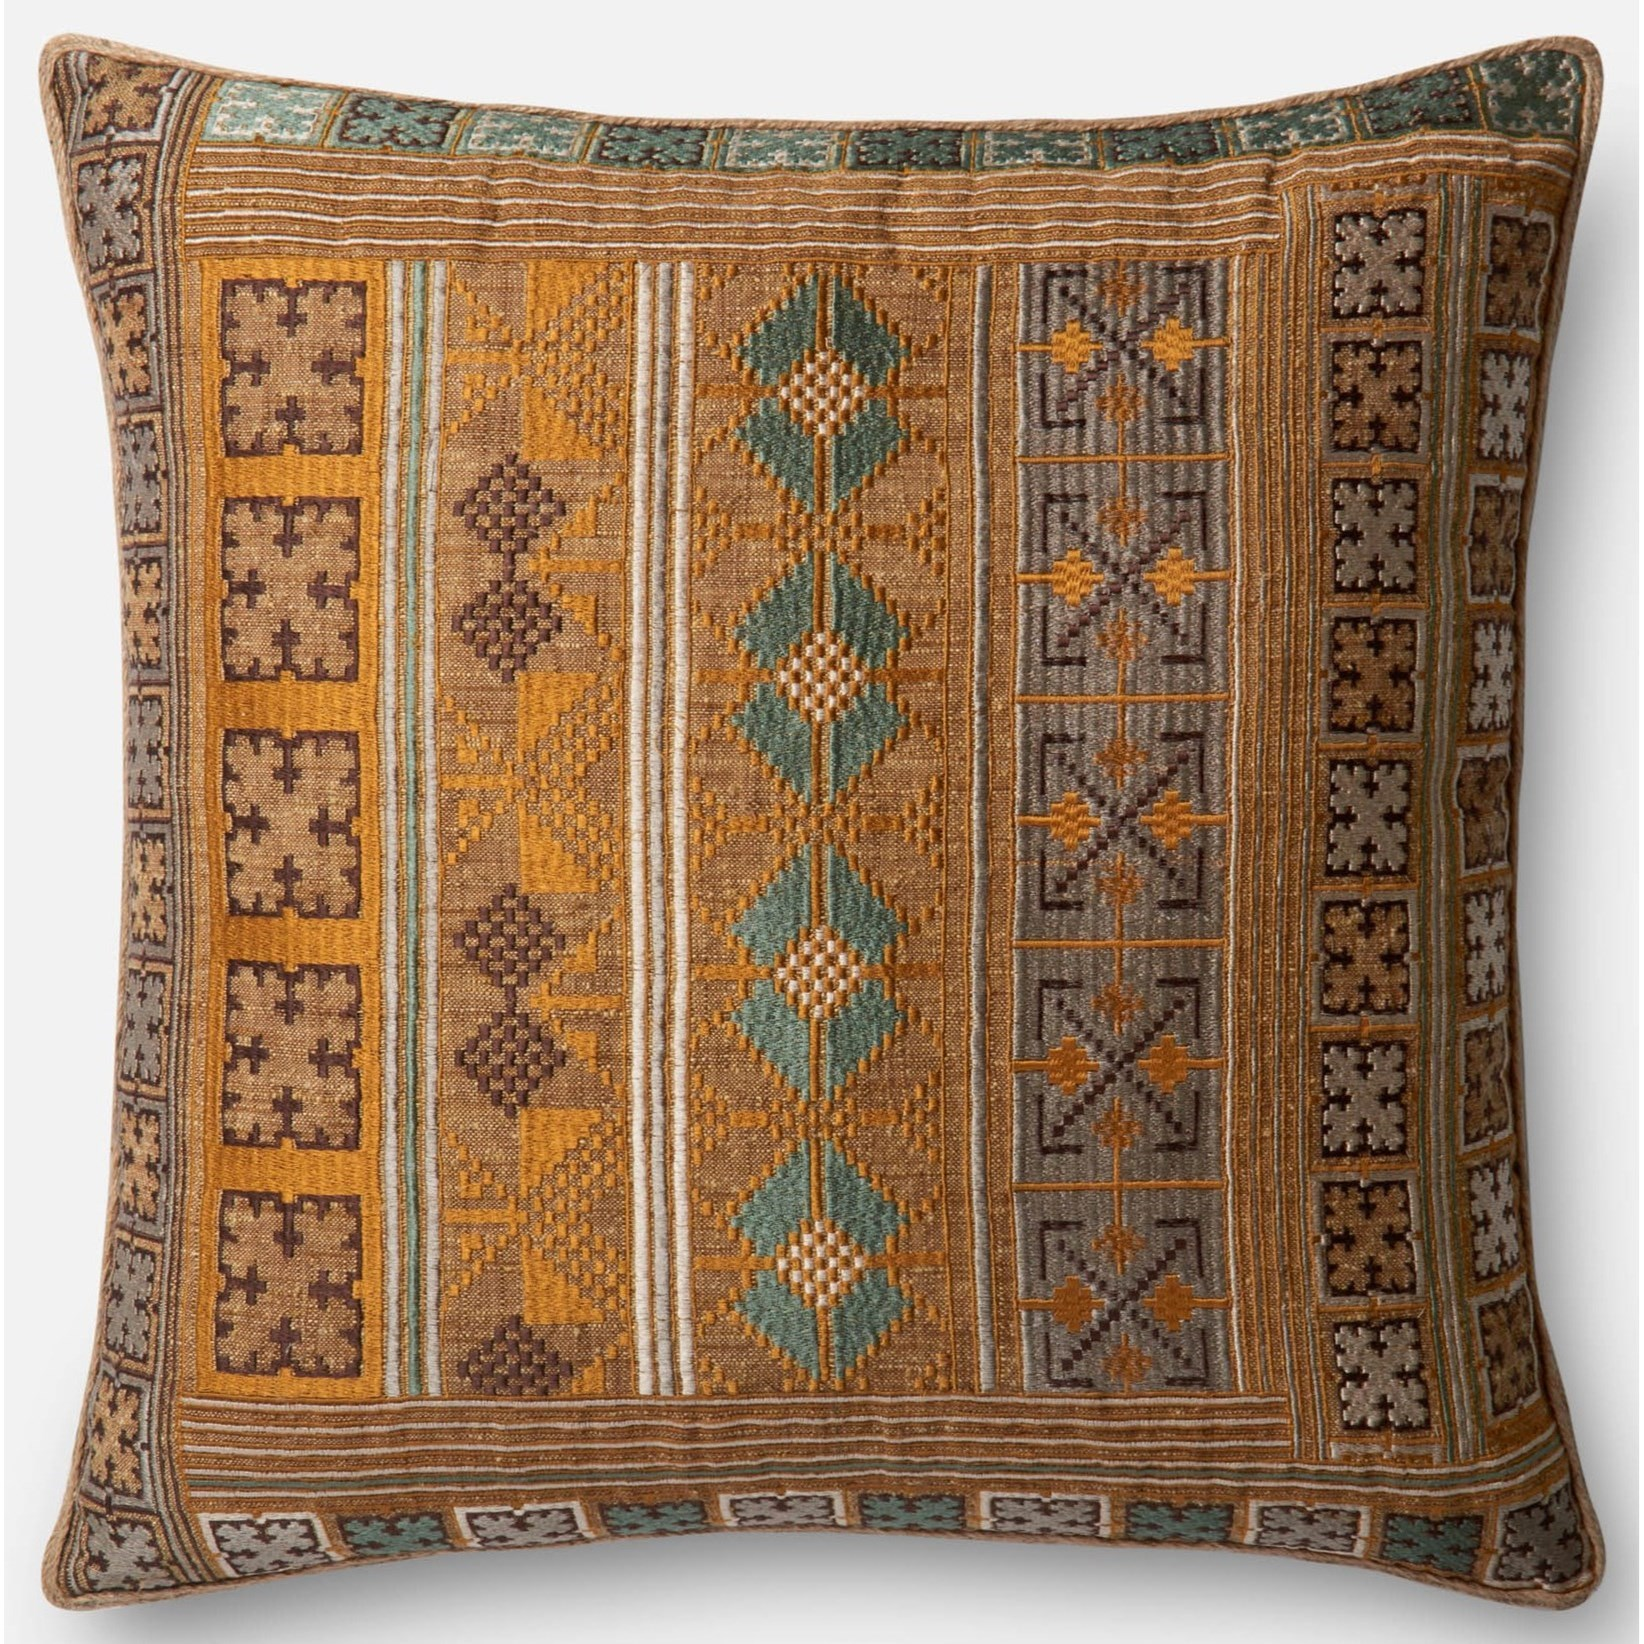 "Applique 22"" X 22"" Down Pillow by Loloi Rugs at Virginia Furniture Market"